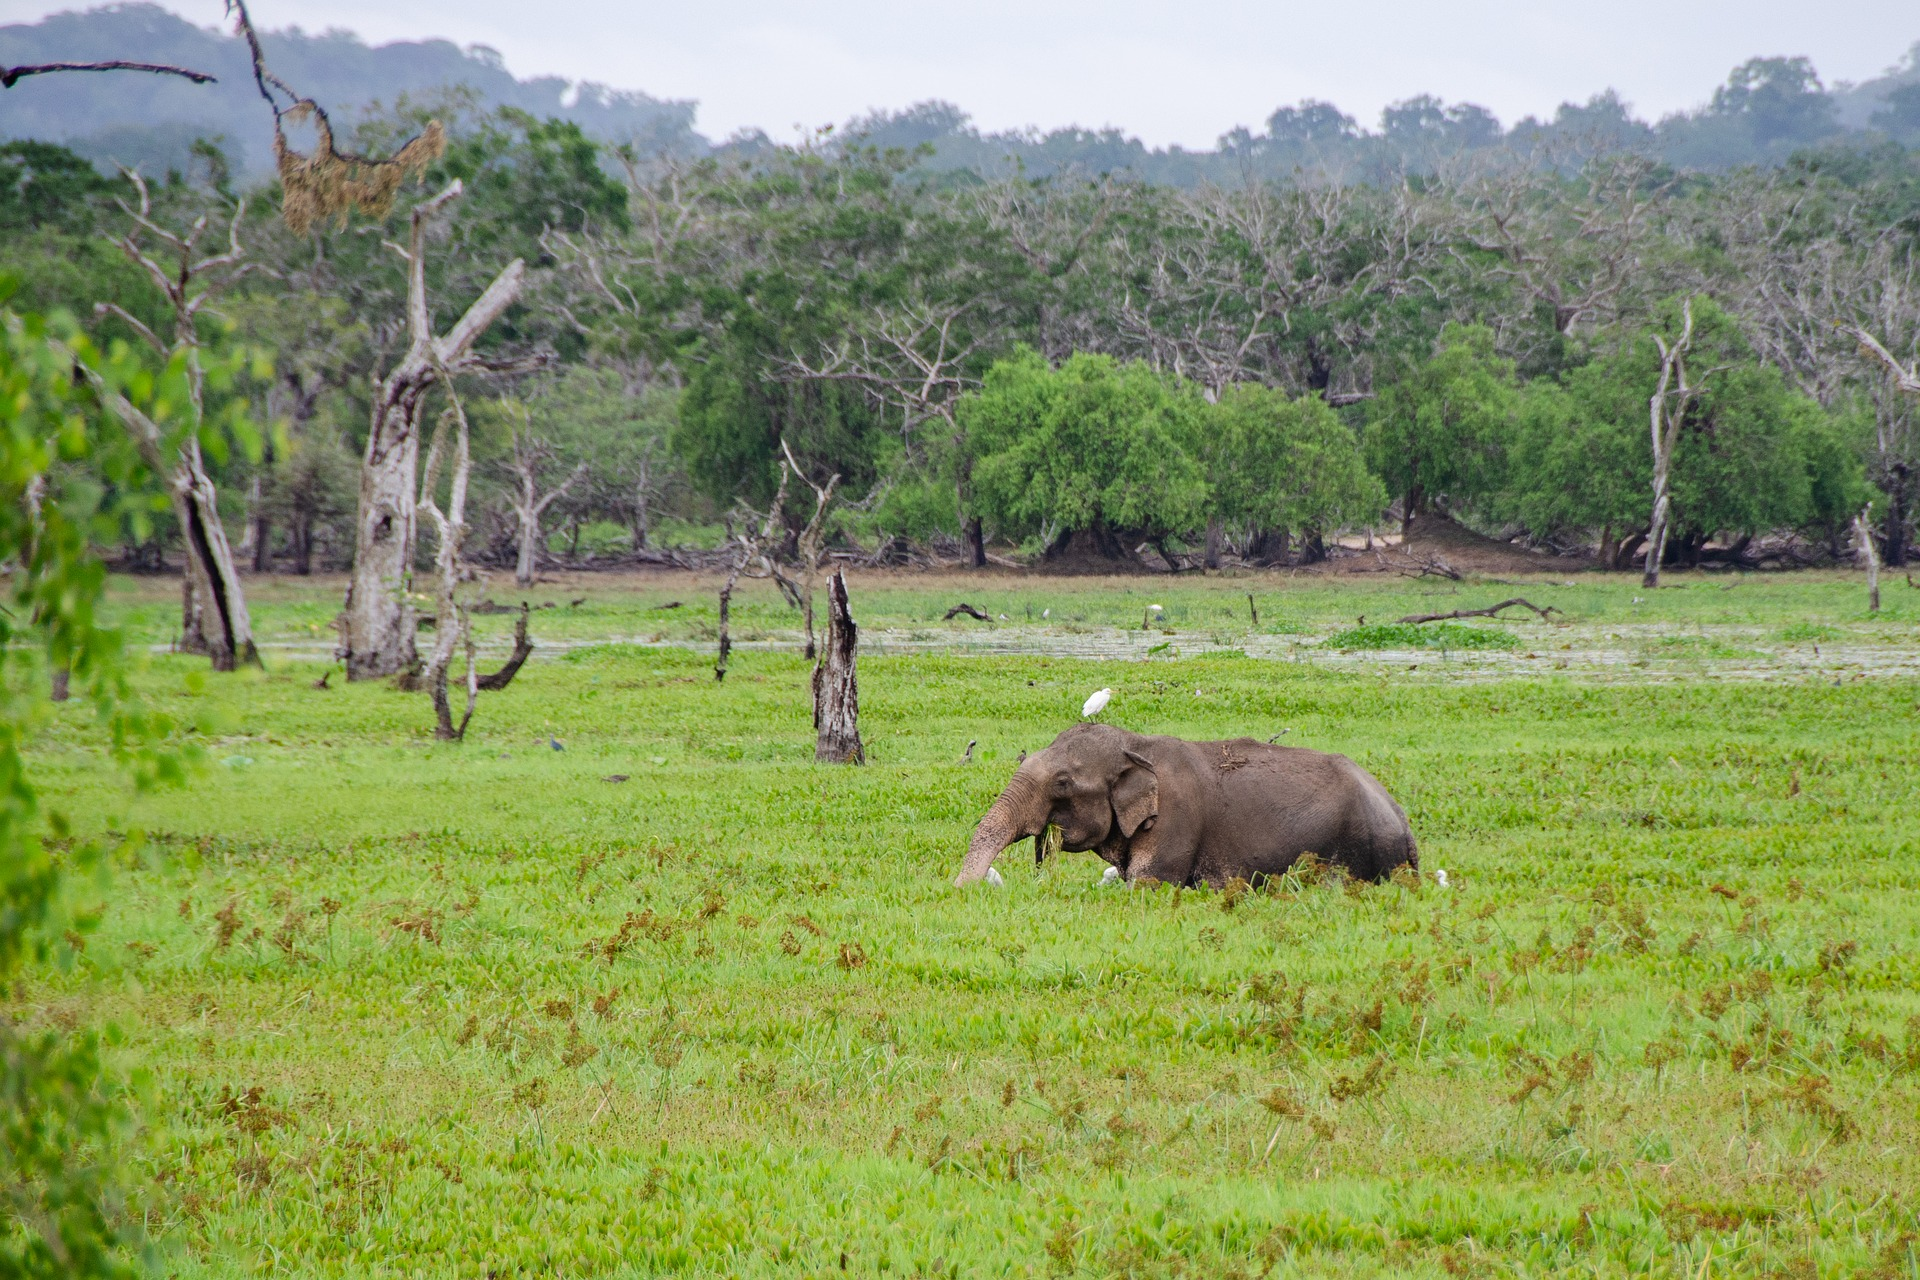 Spirit of Sri Lanka - Yala National Park, Sri Lanka